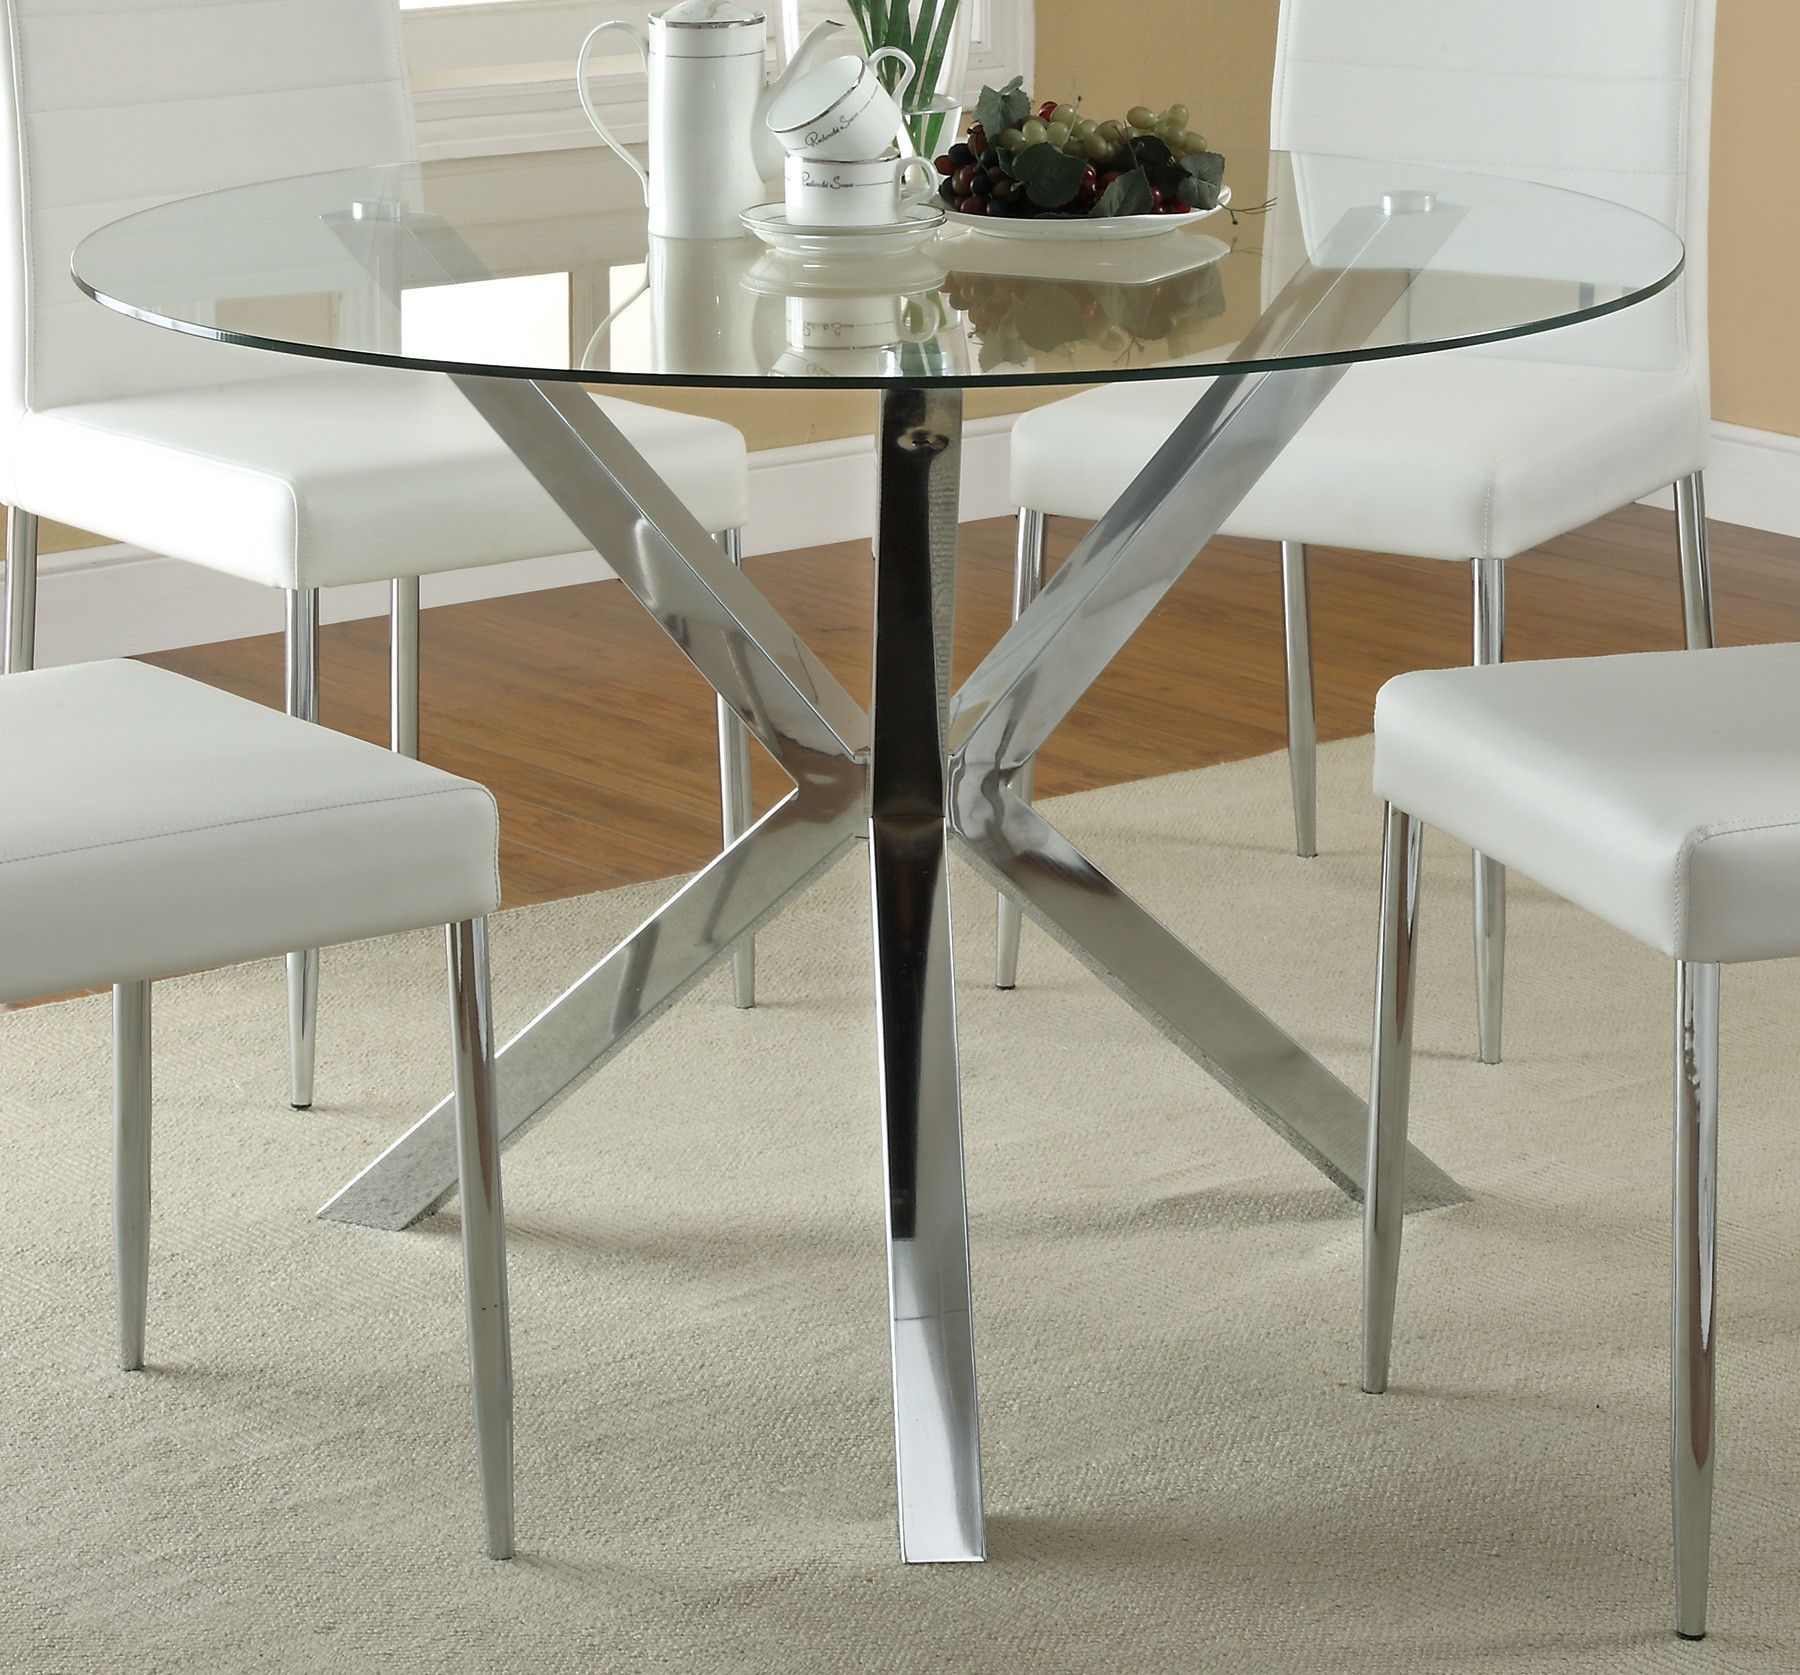 Features Material Metal and glass. Finish Chrome